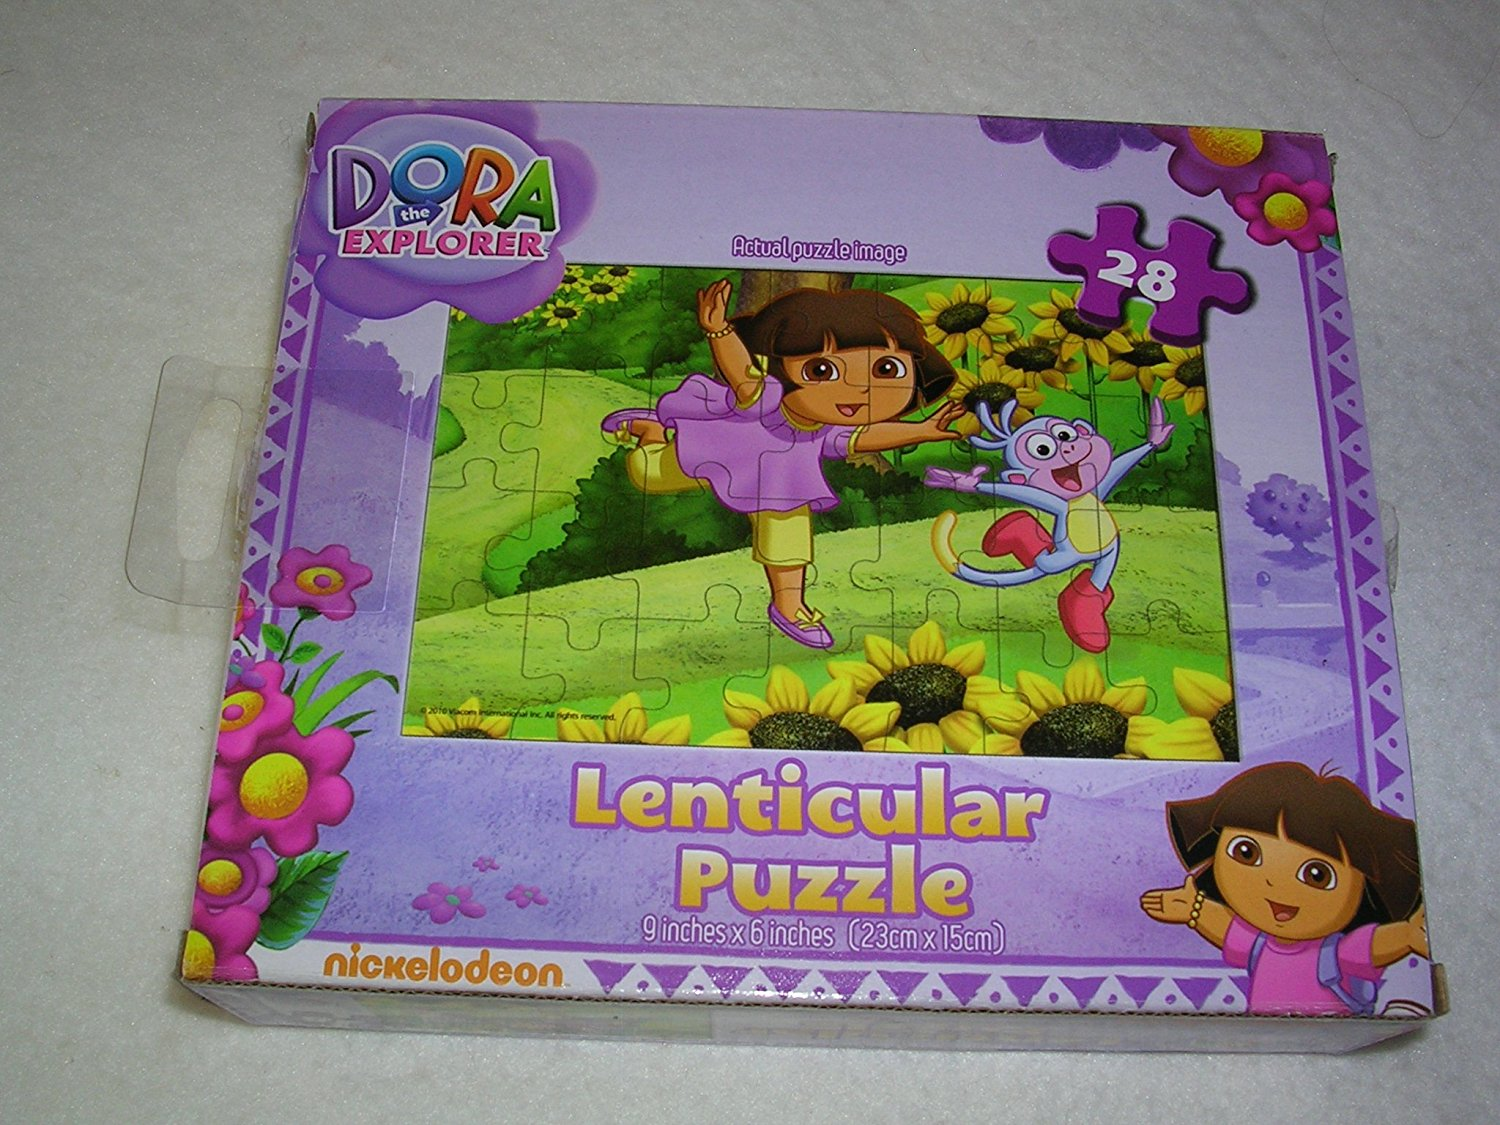 Nickelodeon Dora the Explorer 28 Piece Lenticular 3d Kids Puzzles By Nickleodeon by